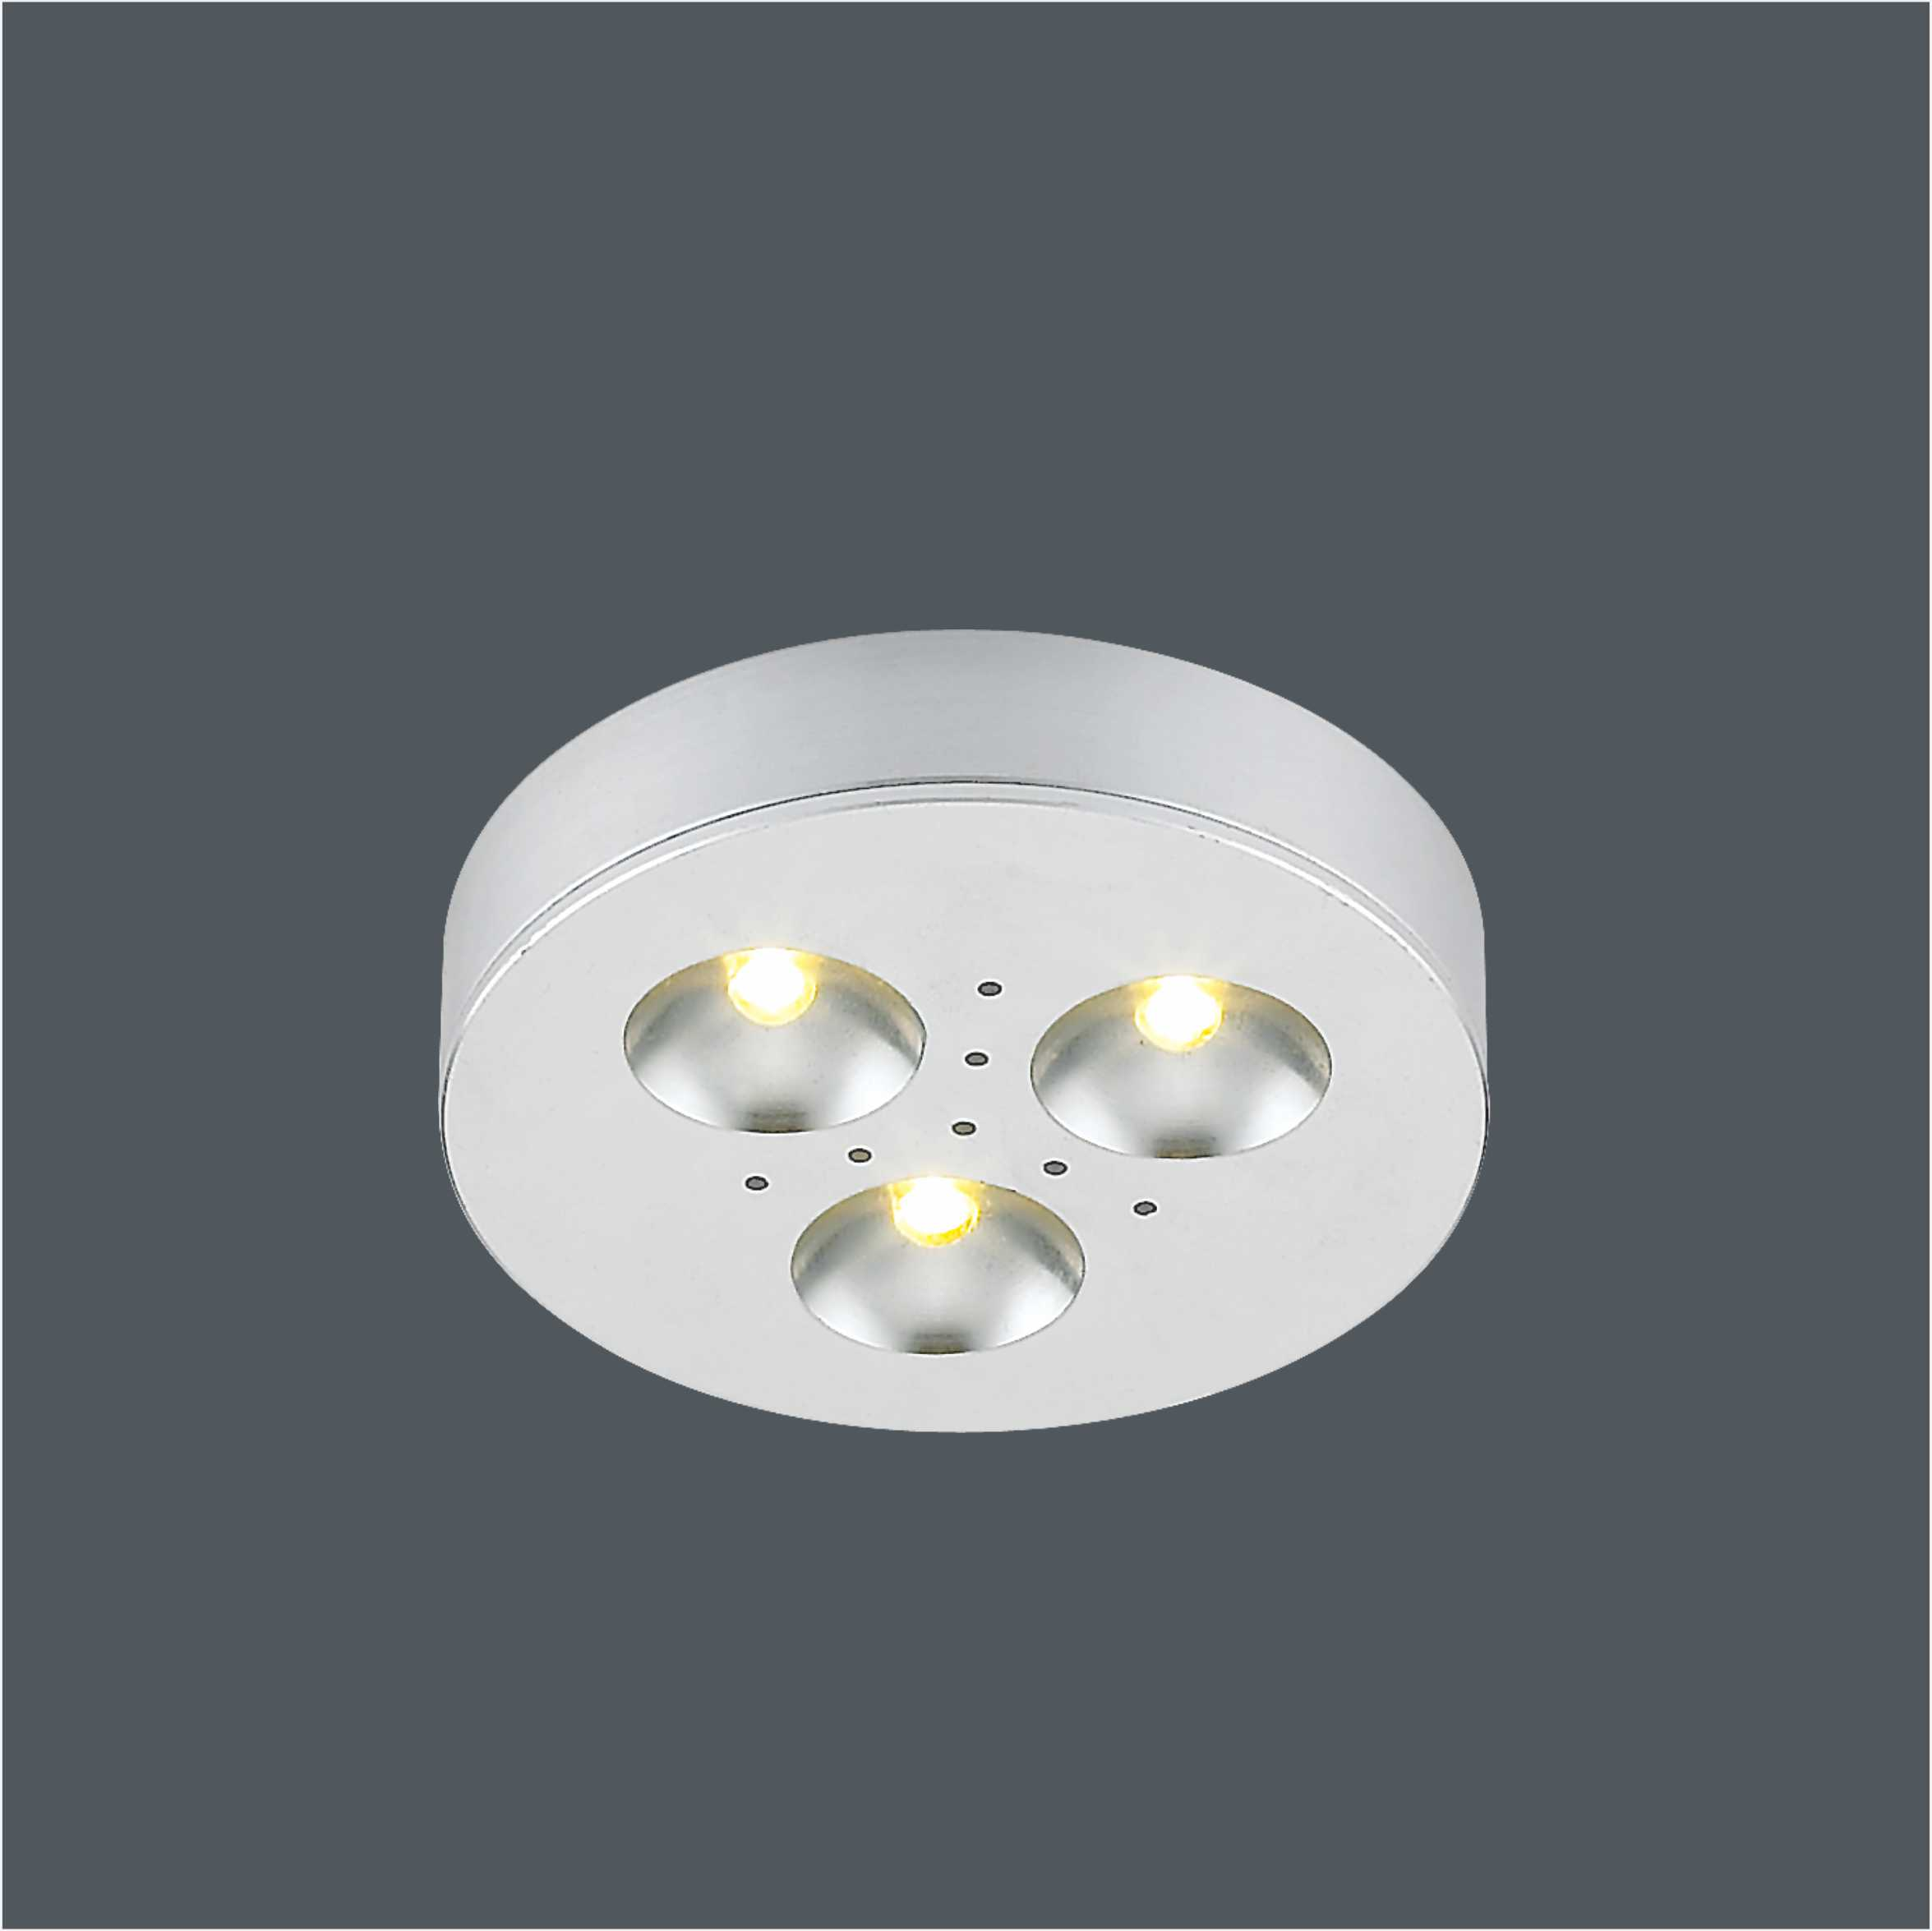 Stylish Circular Surface Mounted LED Cabinet Light 2123